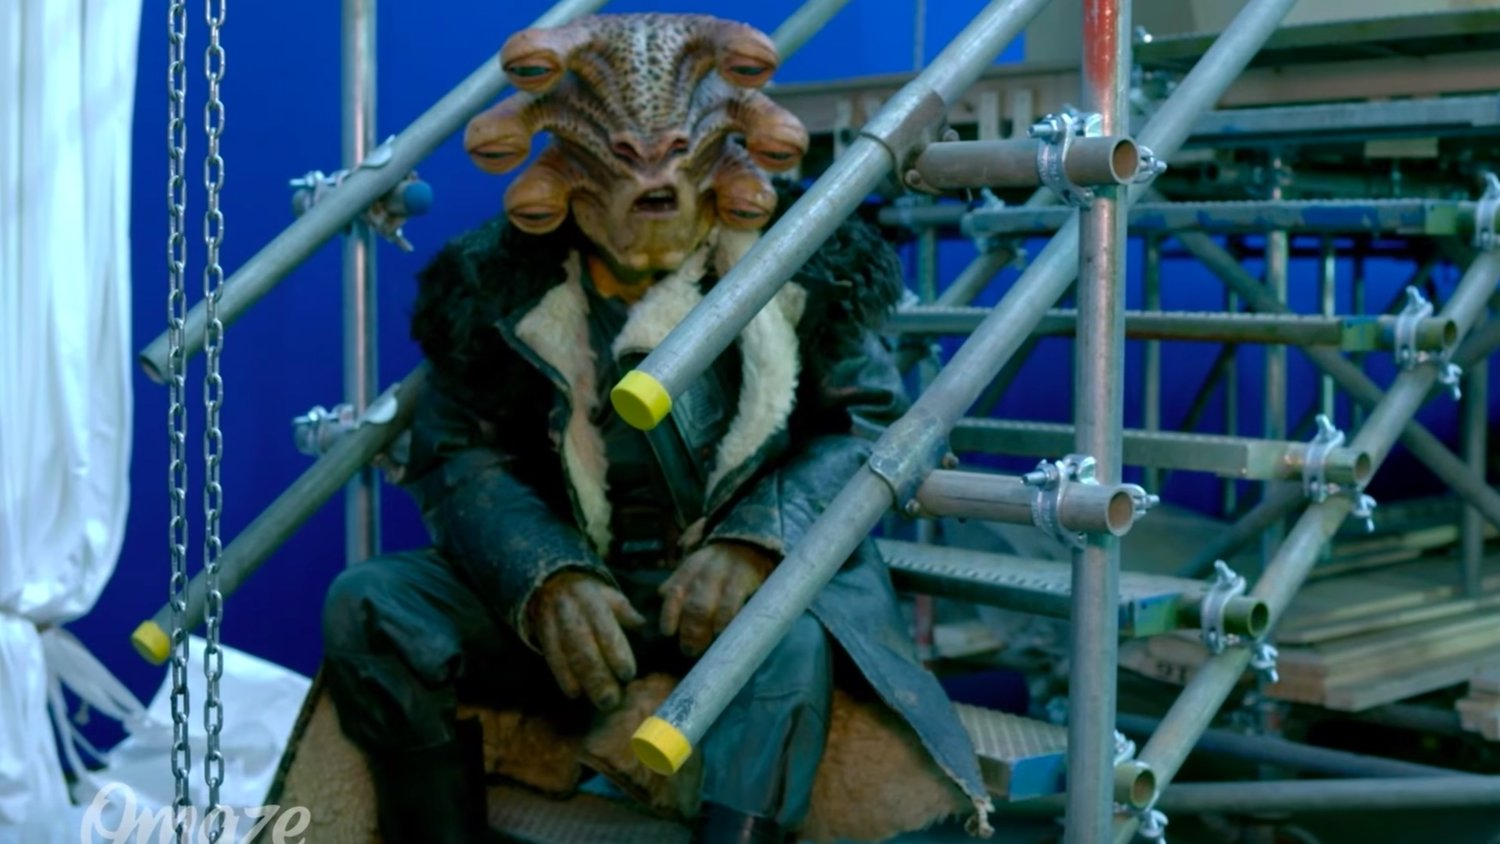 Warwick Davis Teases Us With Footage From the Set of the Han Solo STAR WARS Movie